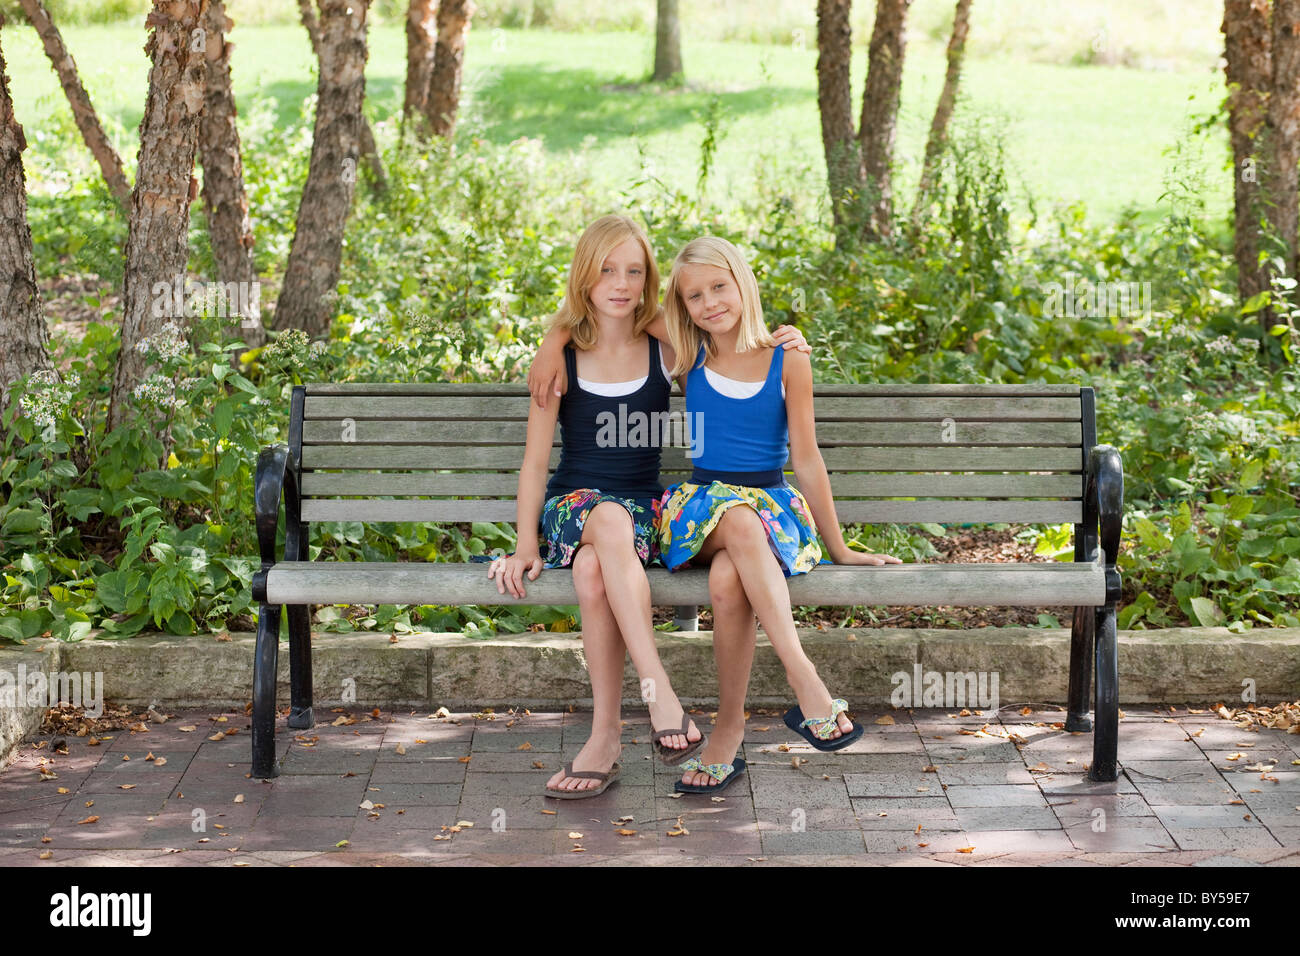 Two Girls legs crossed on a bench Stock Photo